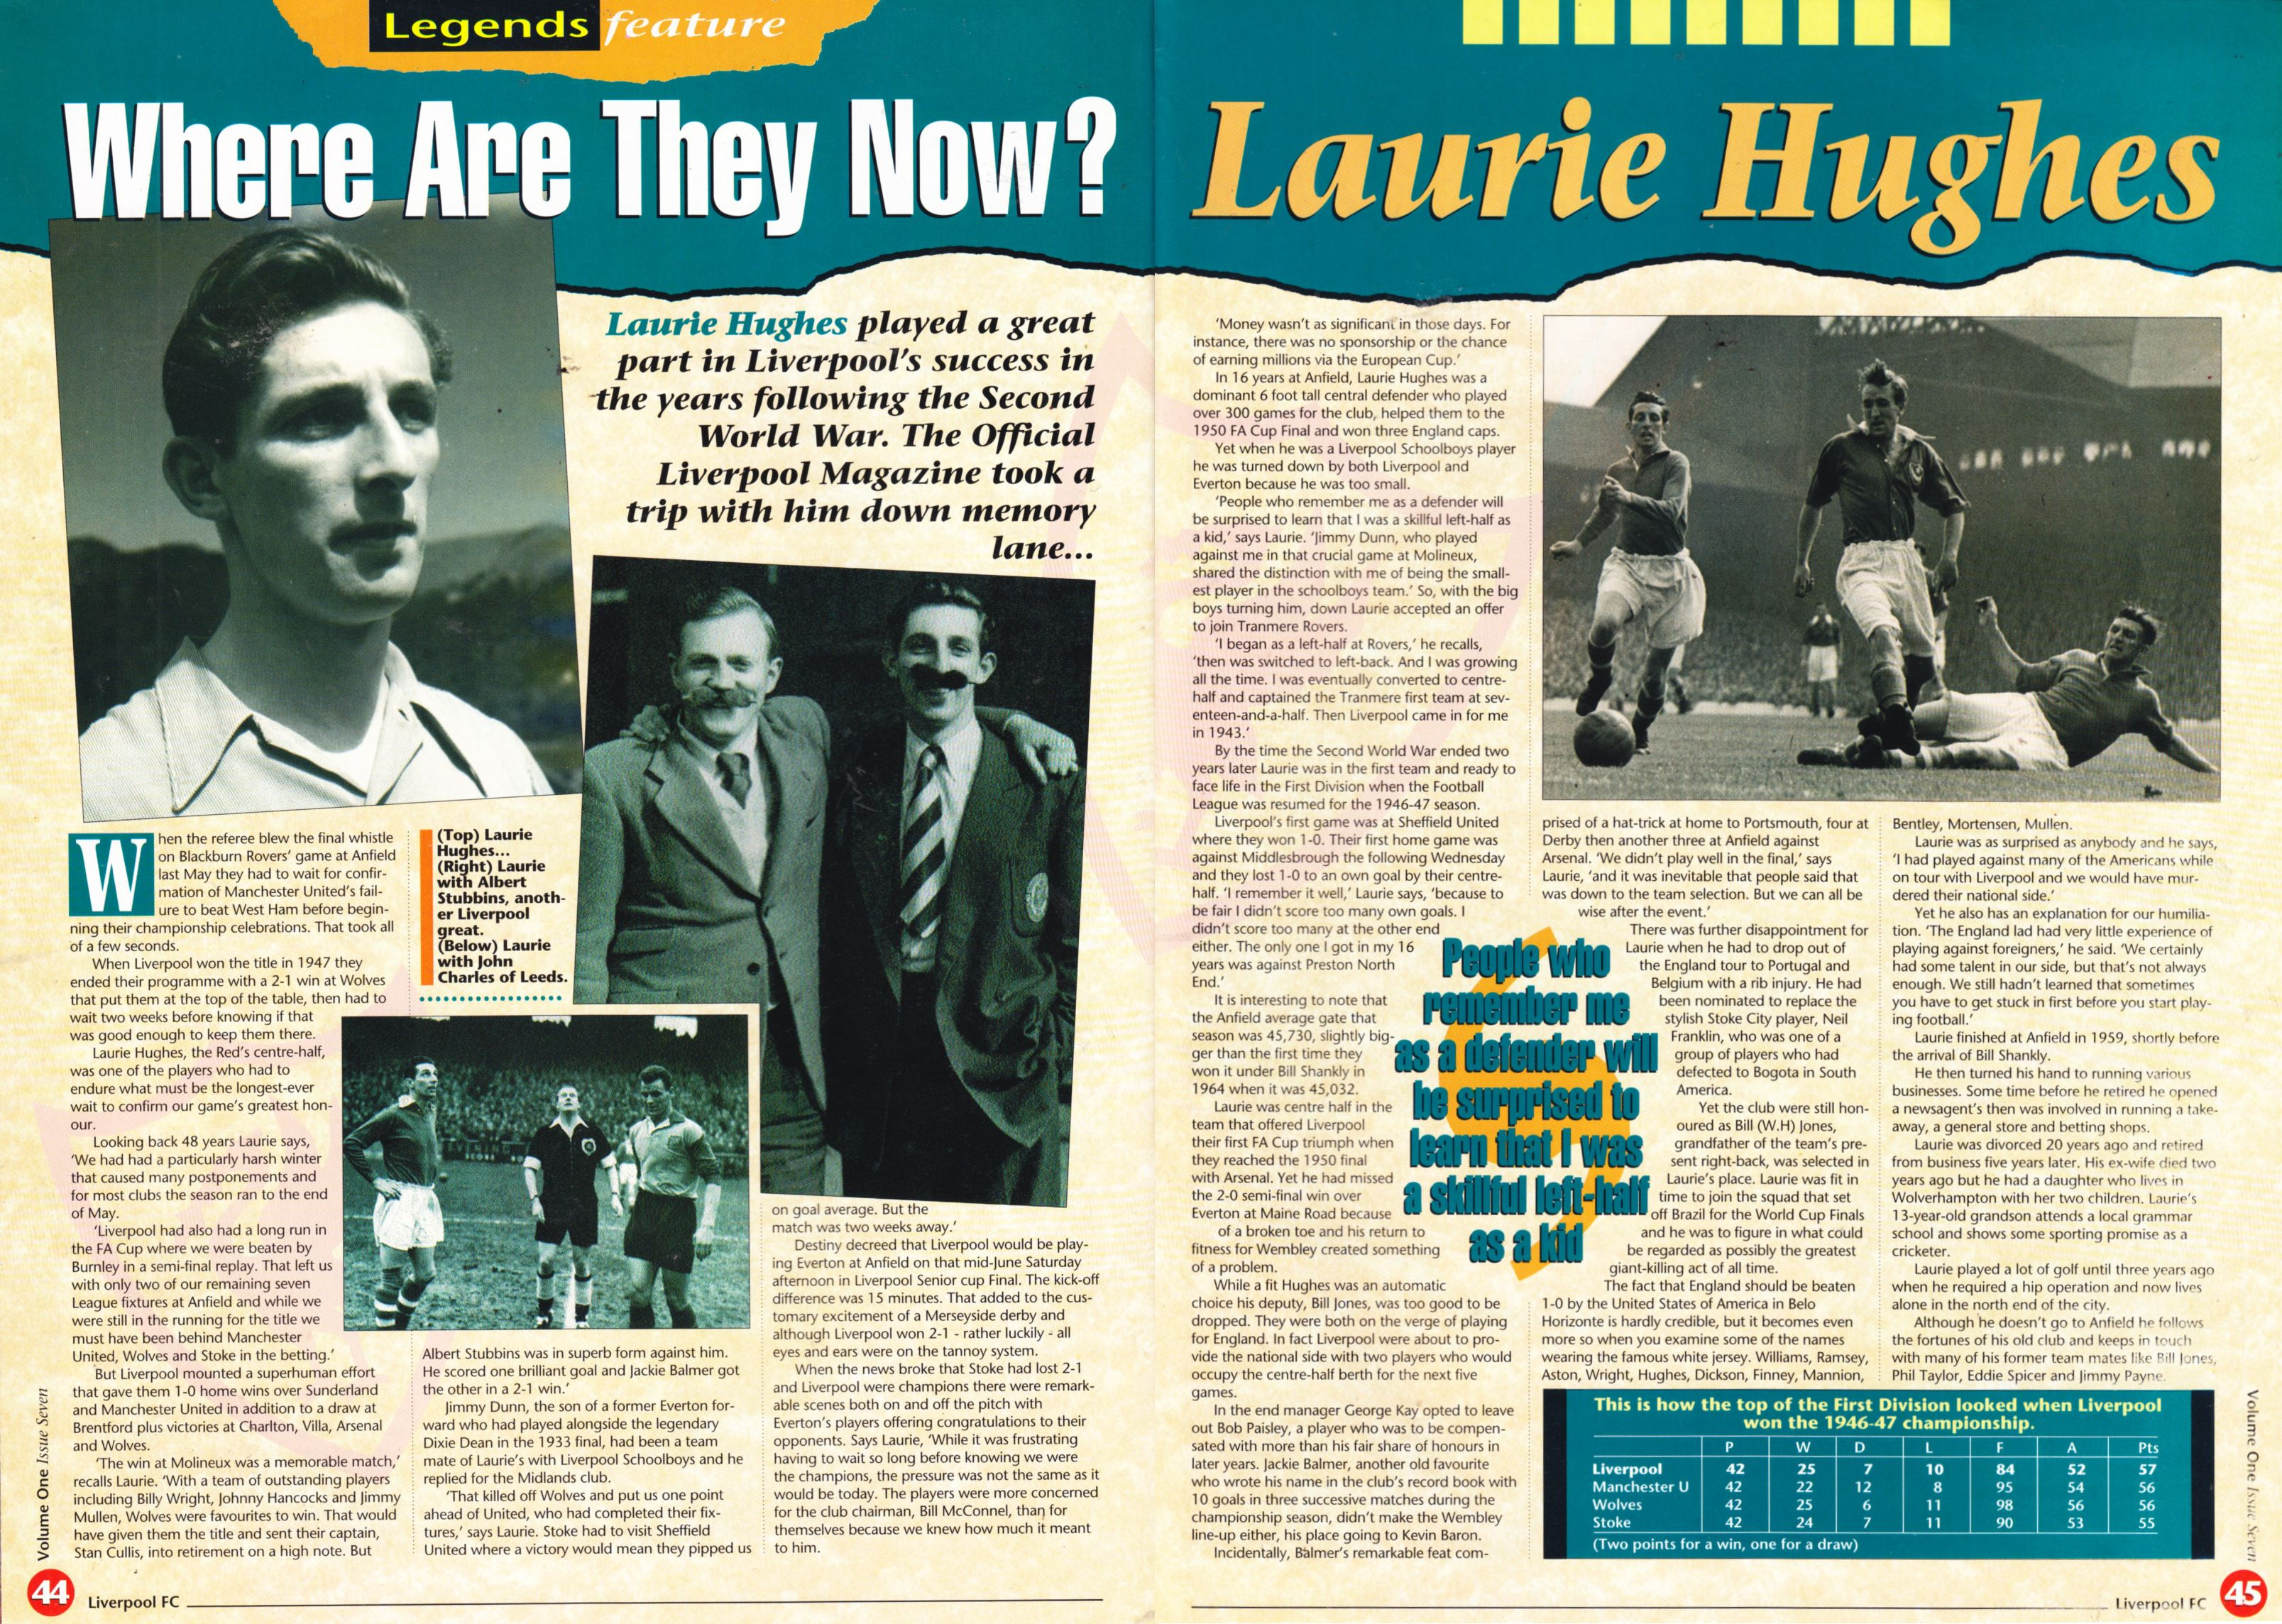 Where are they now? - Liverpool club magazine